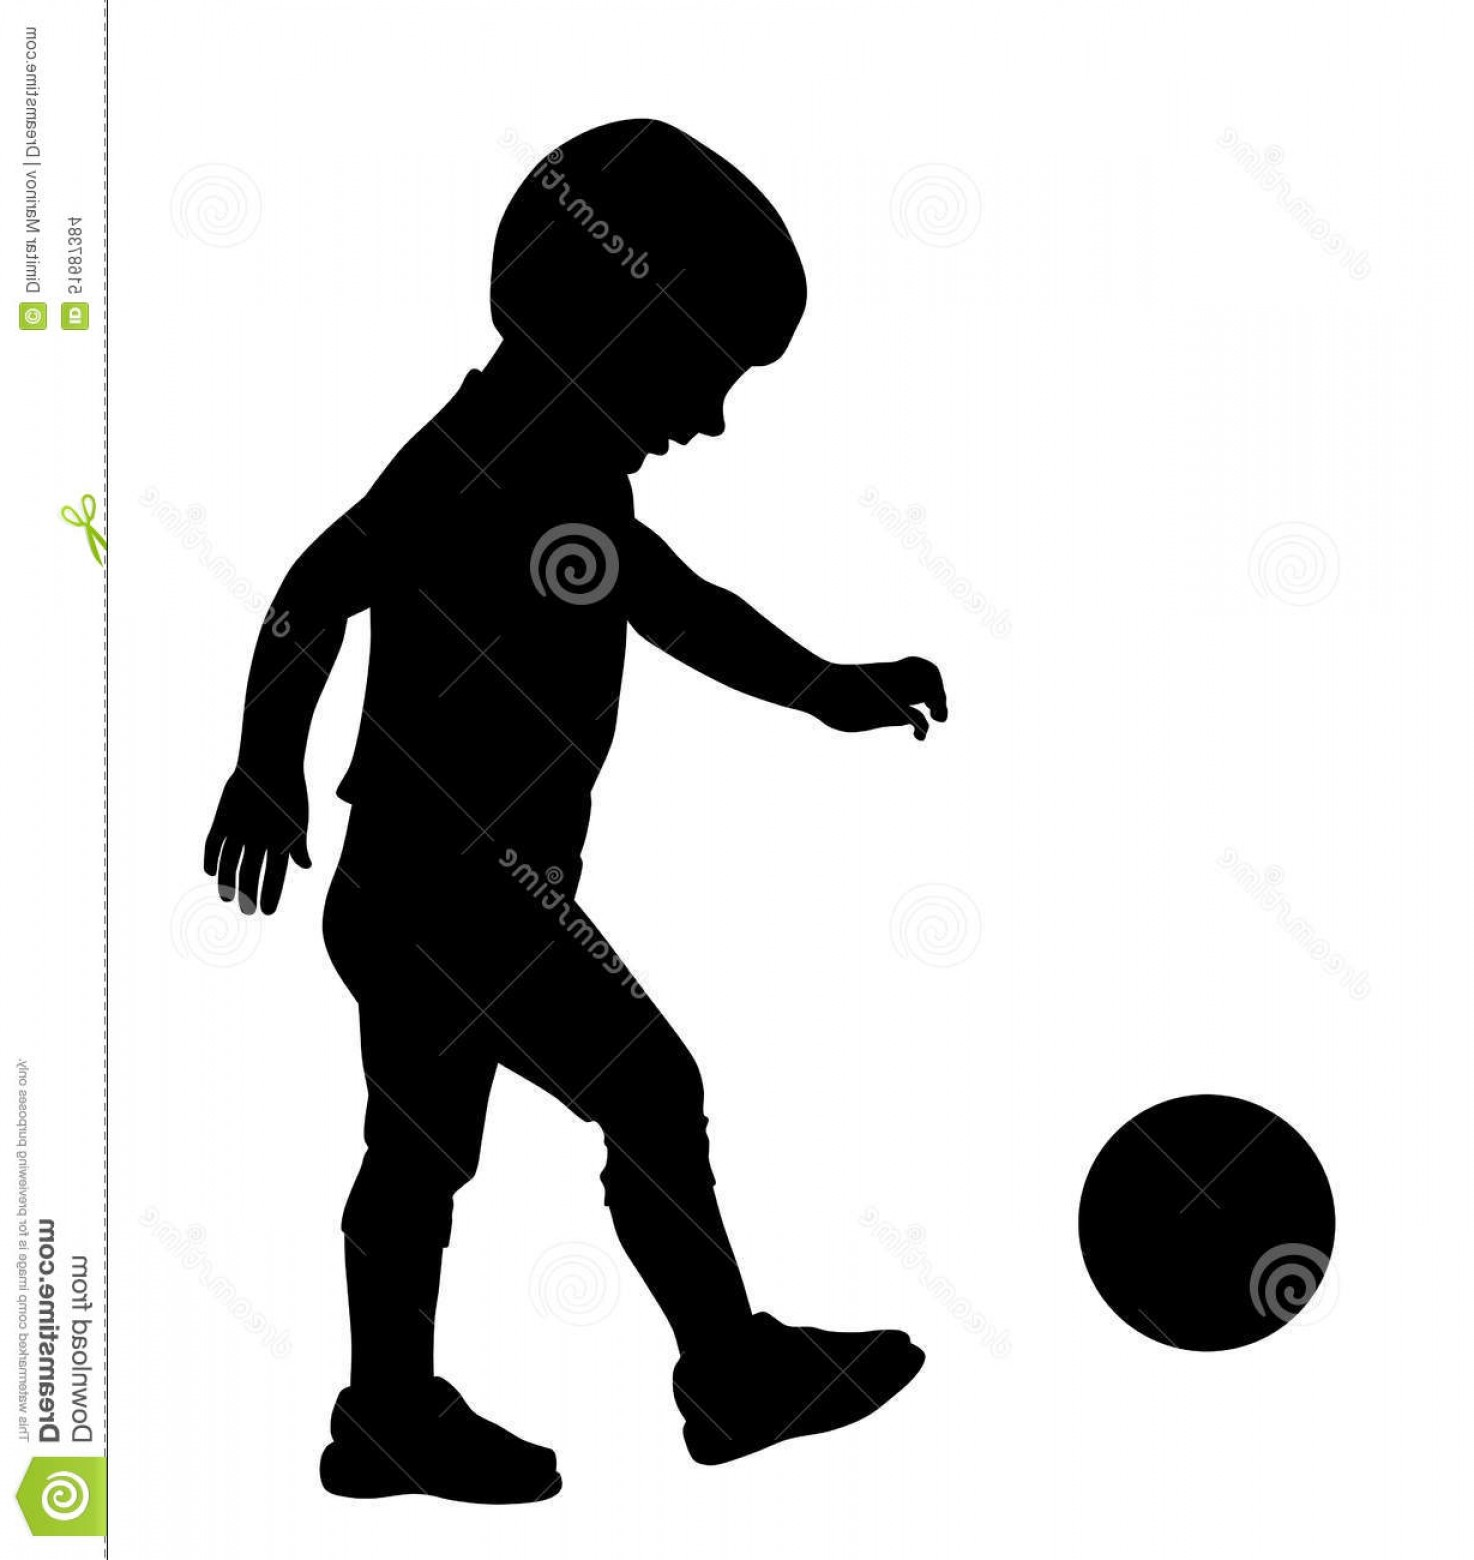 Little Boy Silhouette Vector: Stock Illustration Kid Playing Ball Vector Illustration Little Silhouette Image